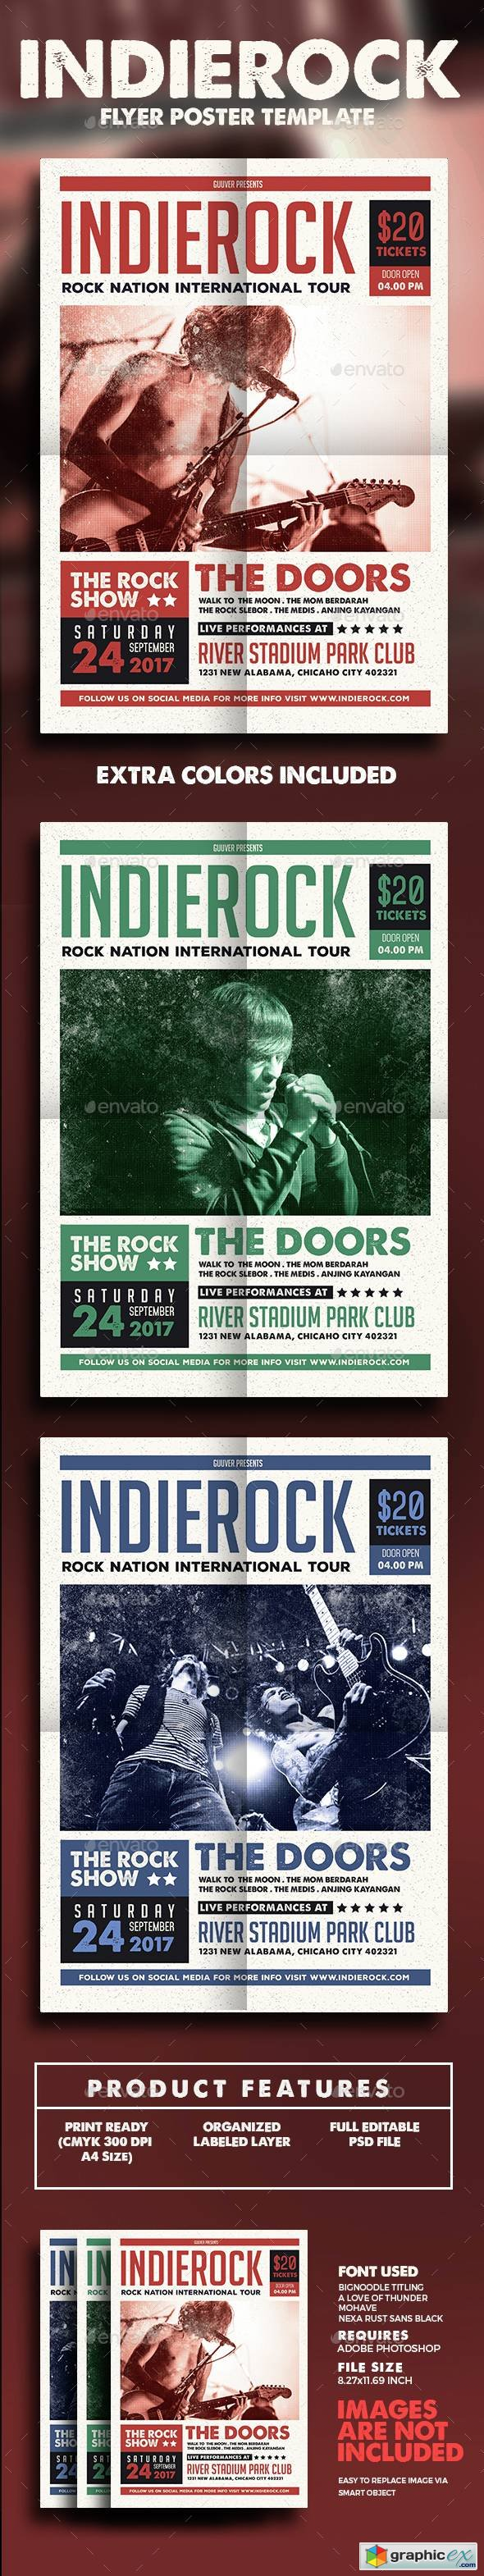 Indie Rock Flyer/Poster